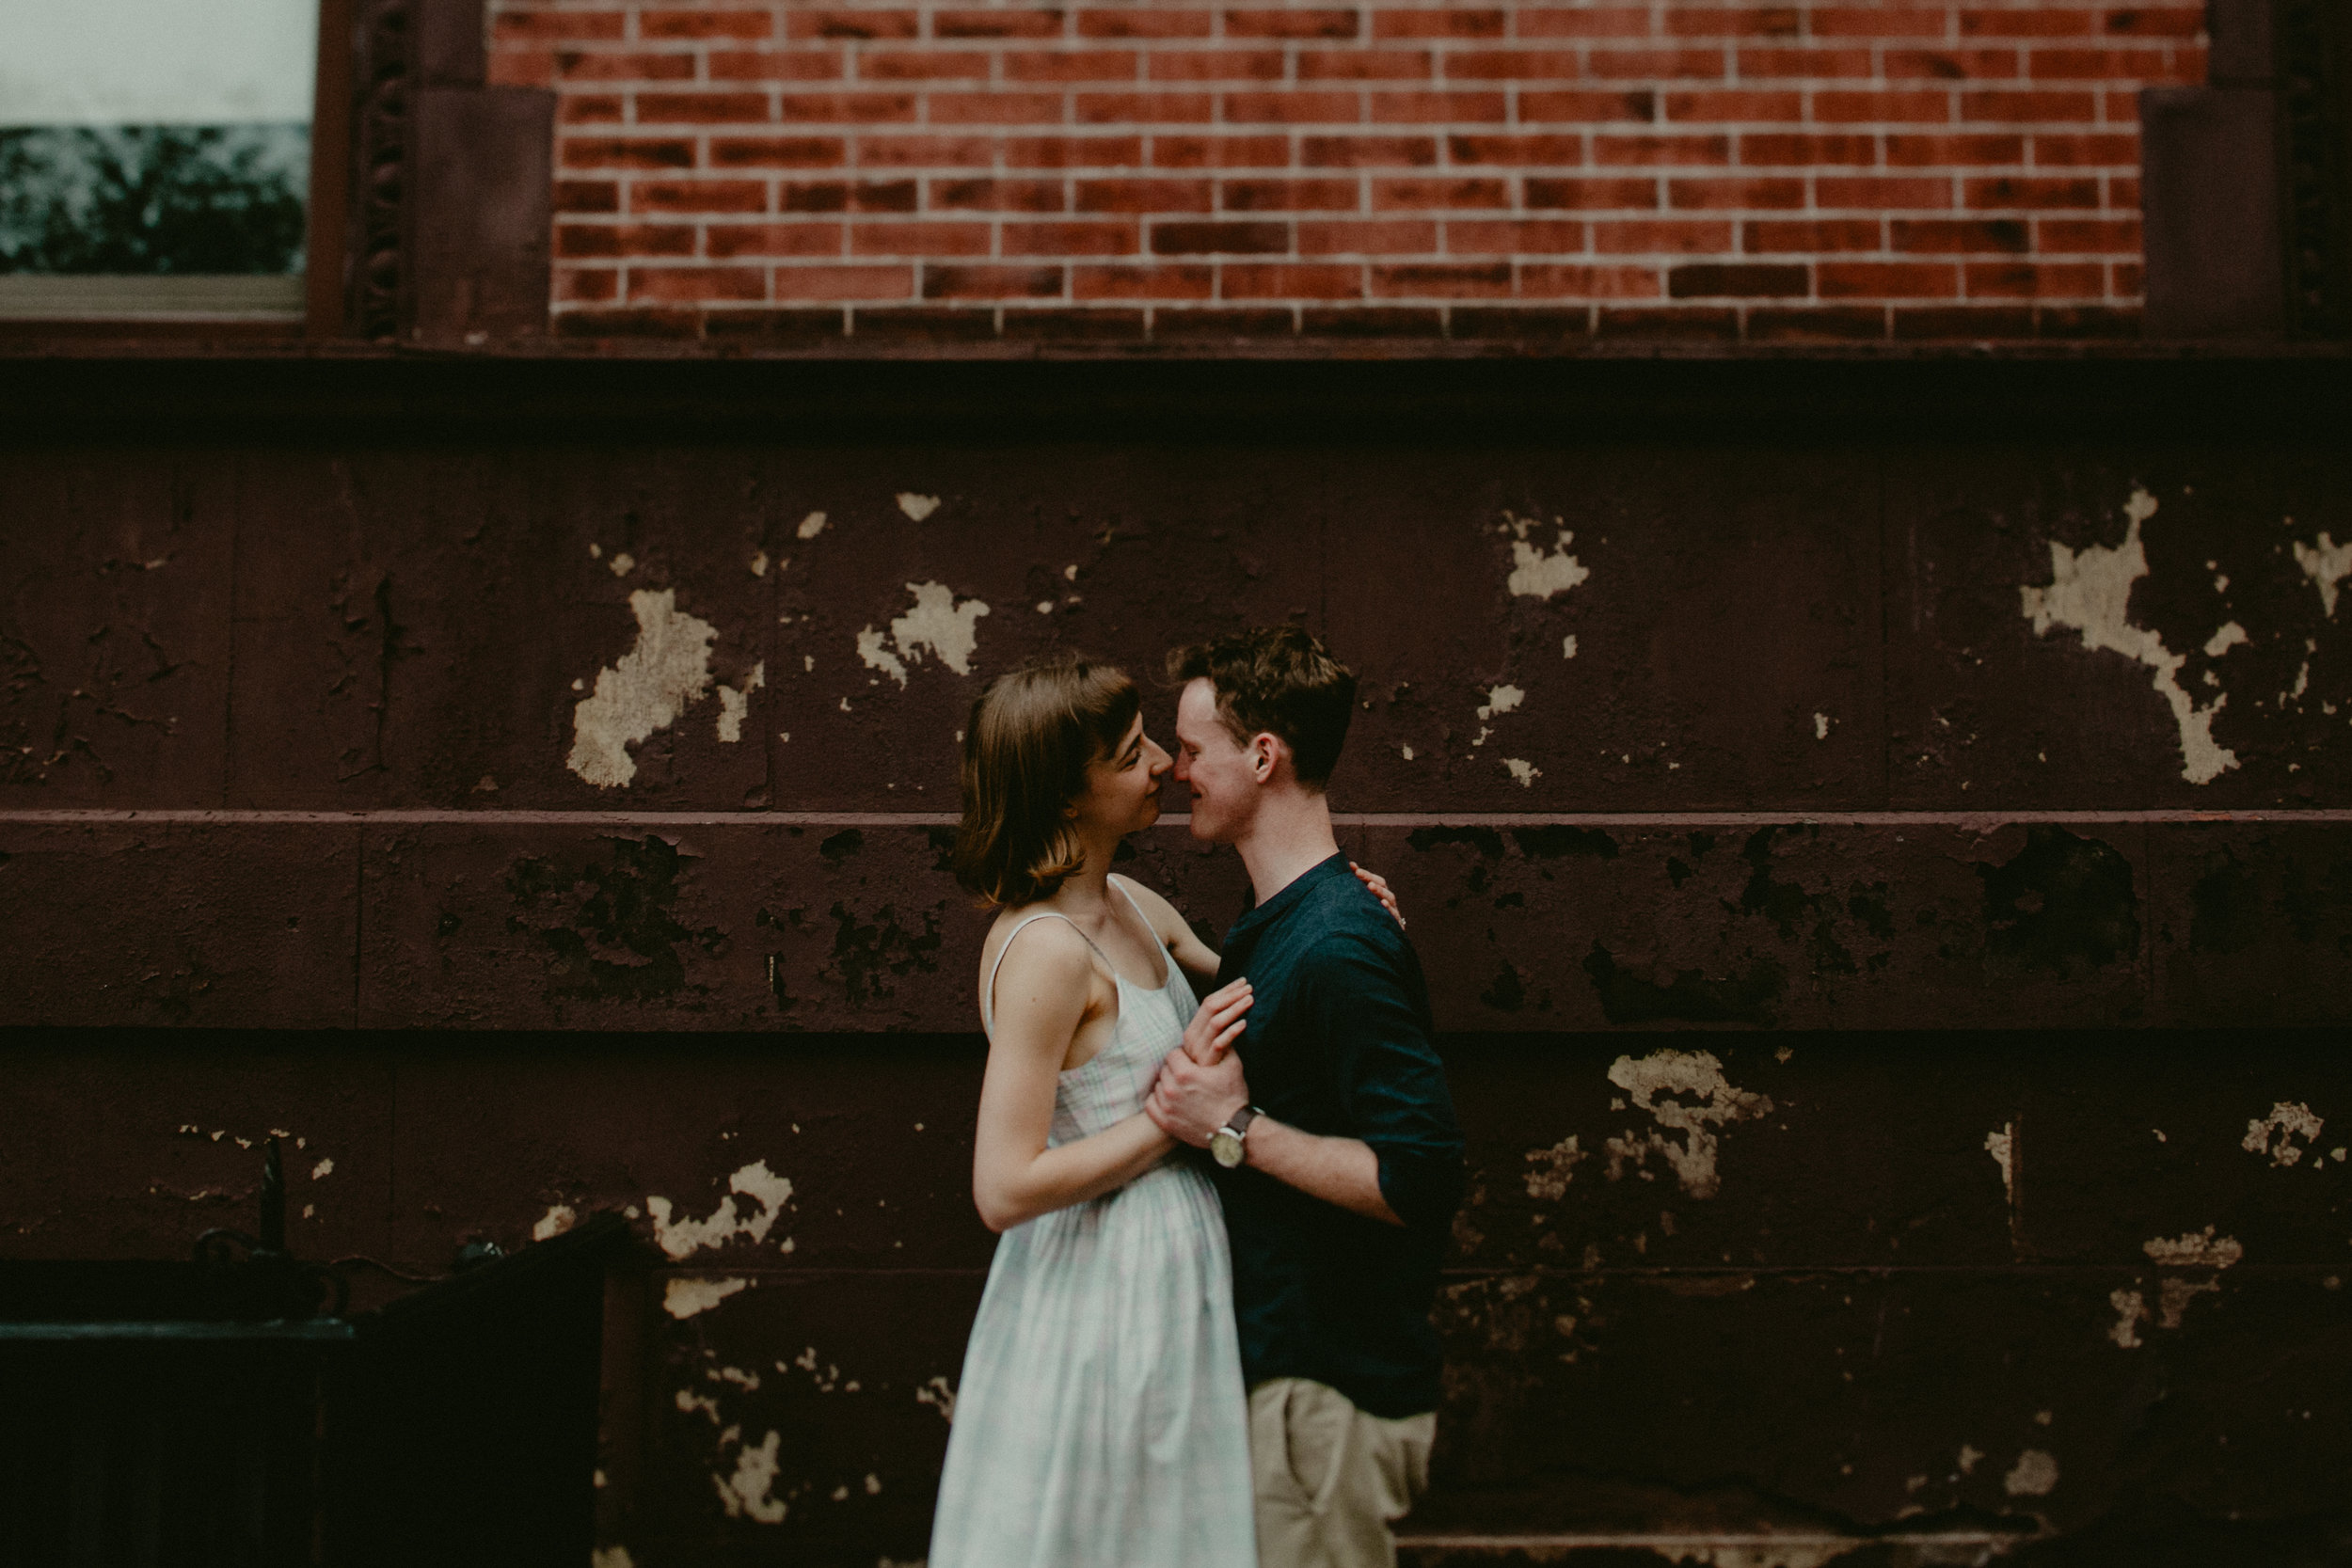 Brooklyn_Wedding_Photographer_Chellise_Michael_Photography-96.jpg